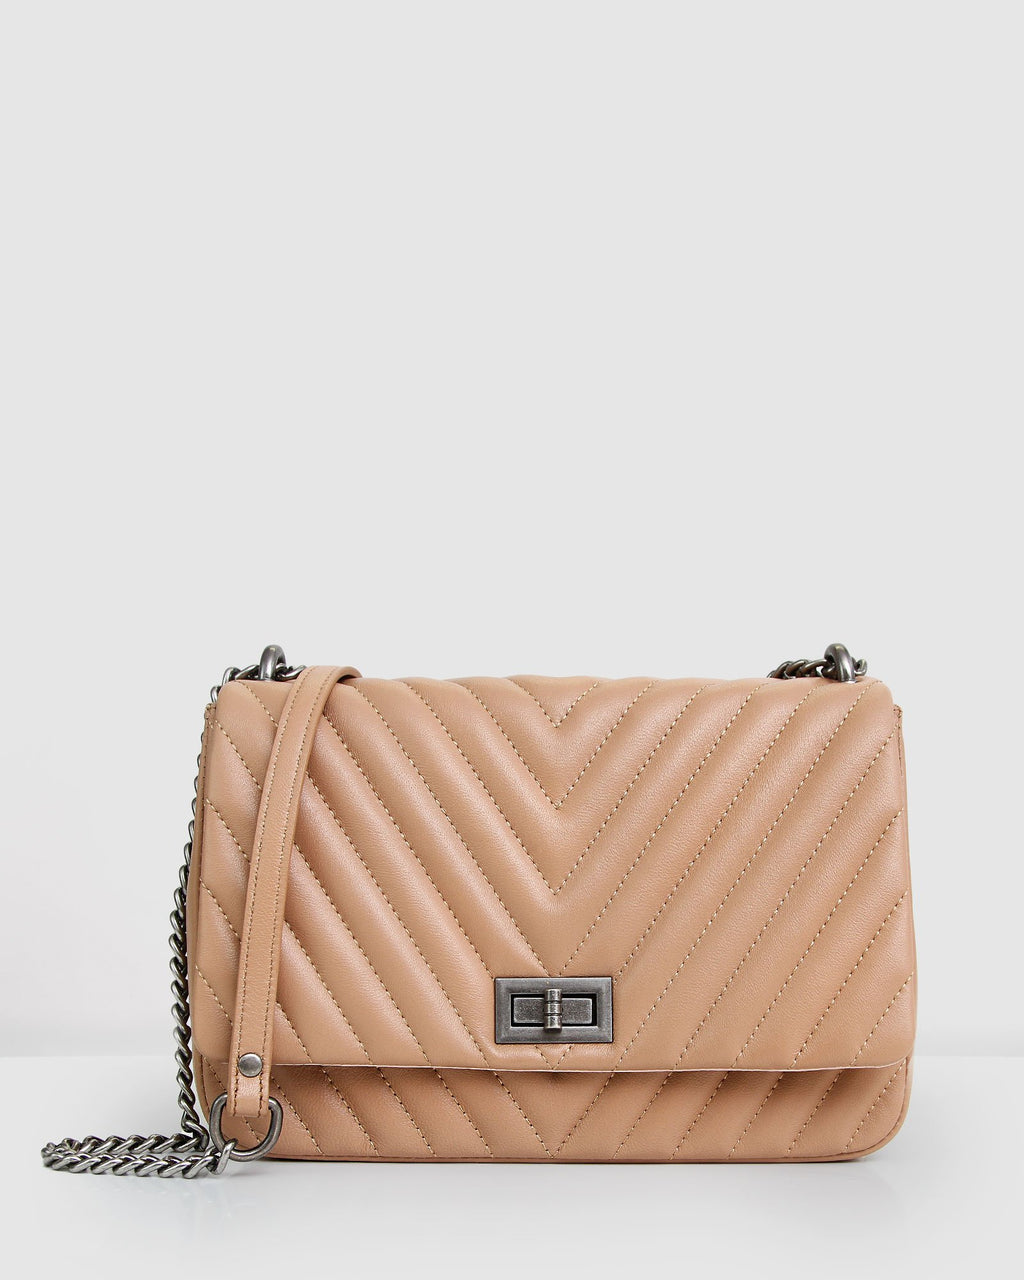 Belong to You Quilted Cross-Body Bag - Camel